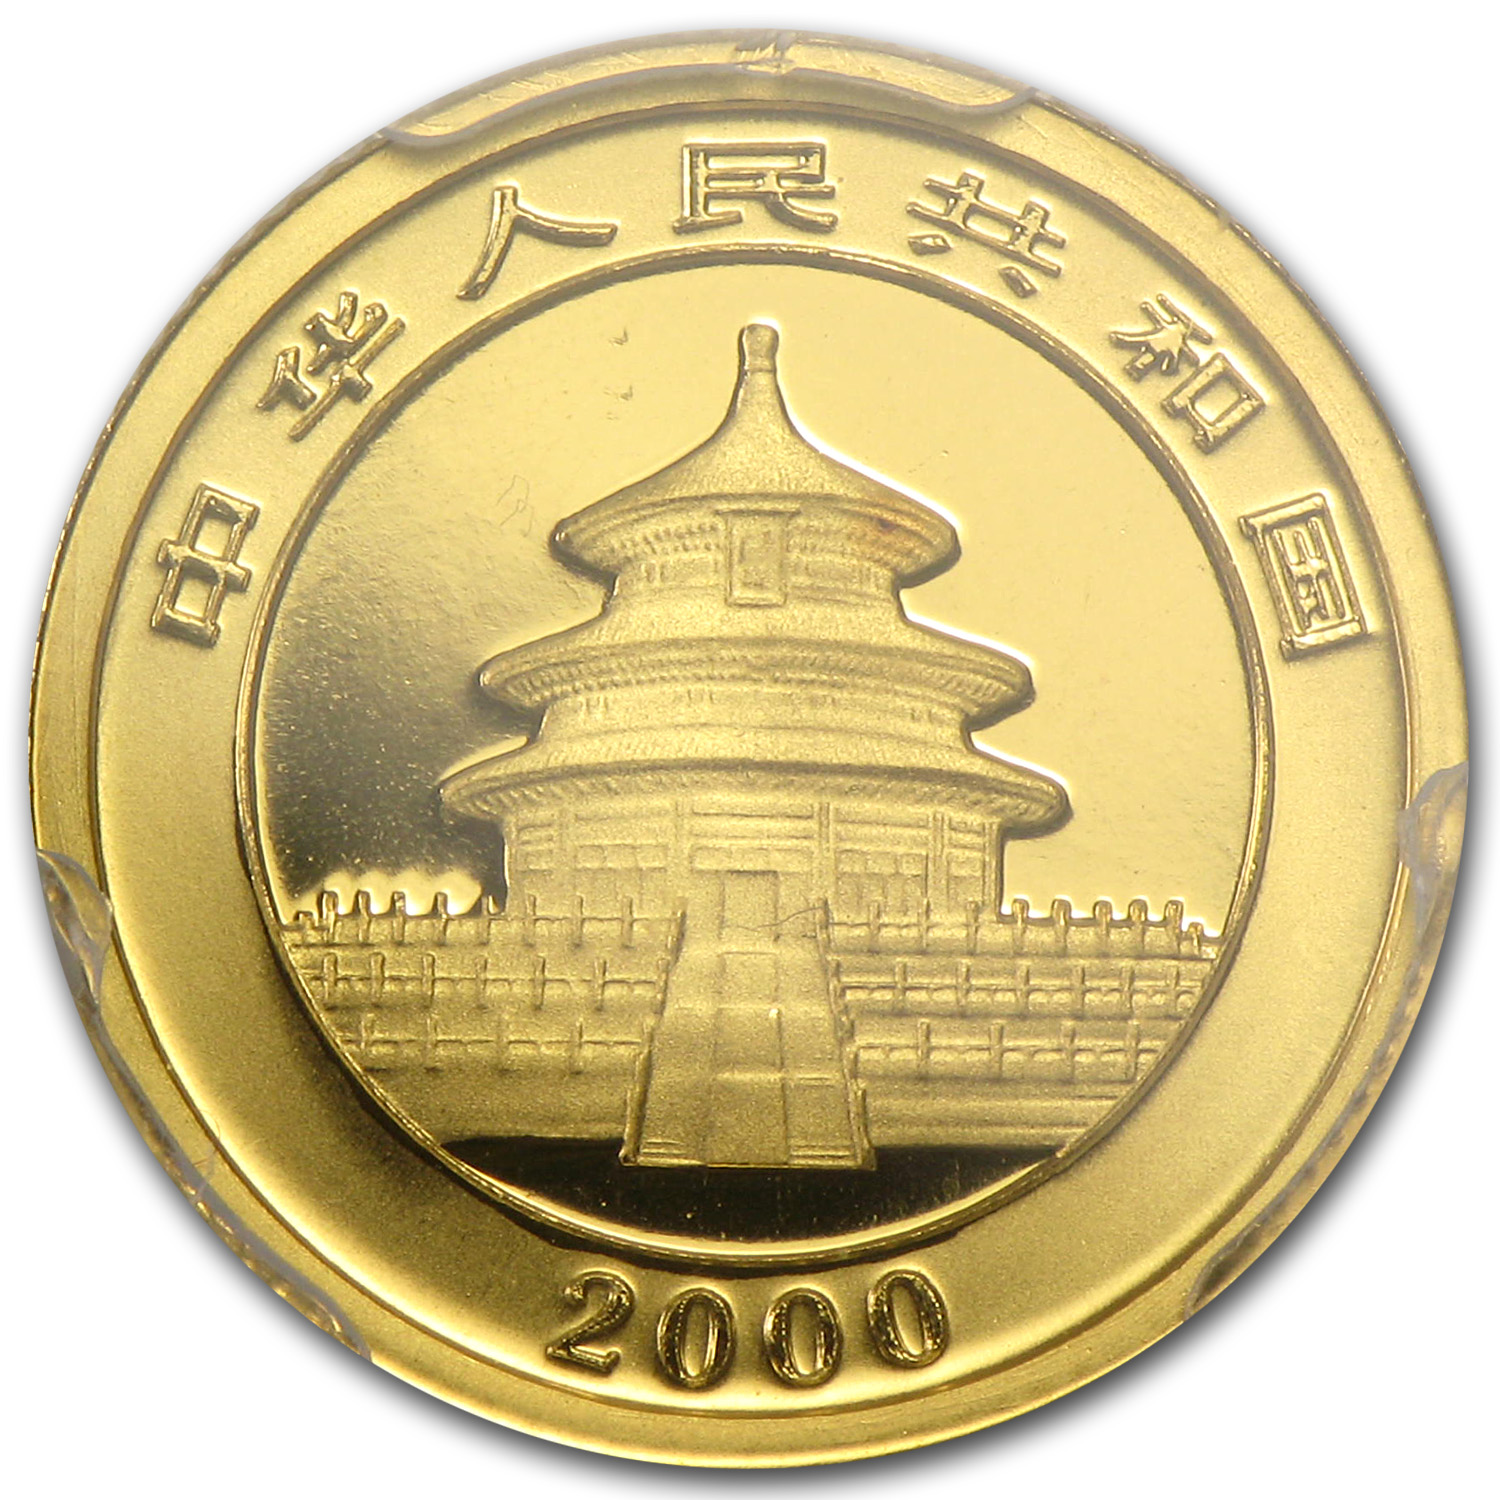 2000 1/10 oz Gold Chinese Panda Frosted MS-69 PCGS